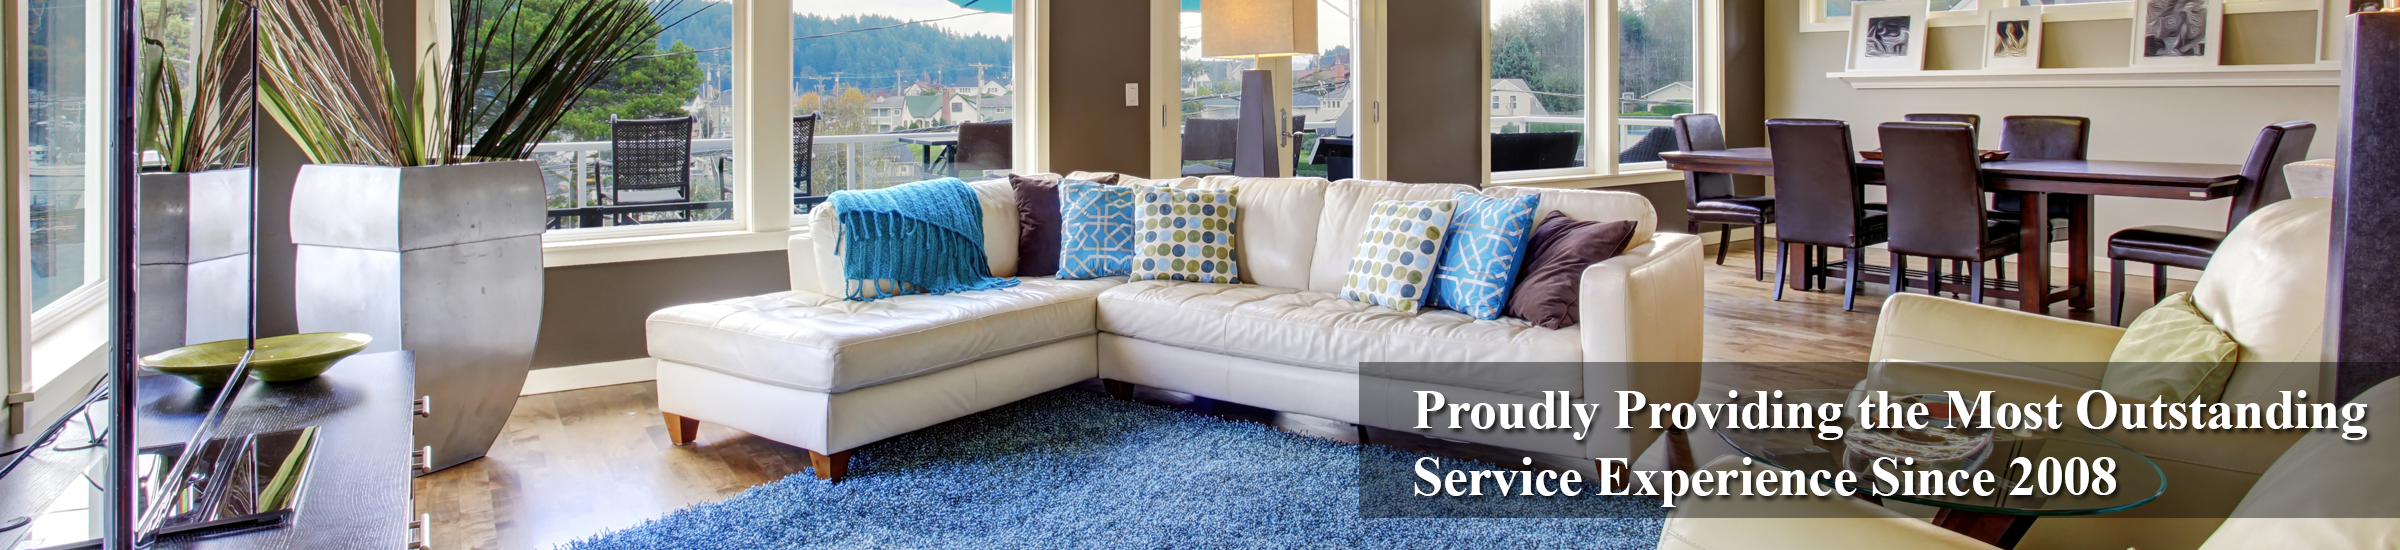 Carpet Cleaning Bradenton Fl